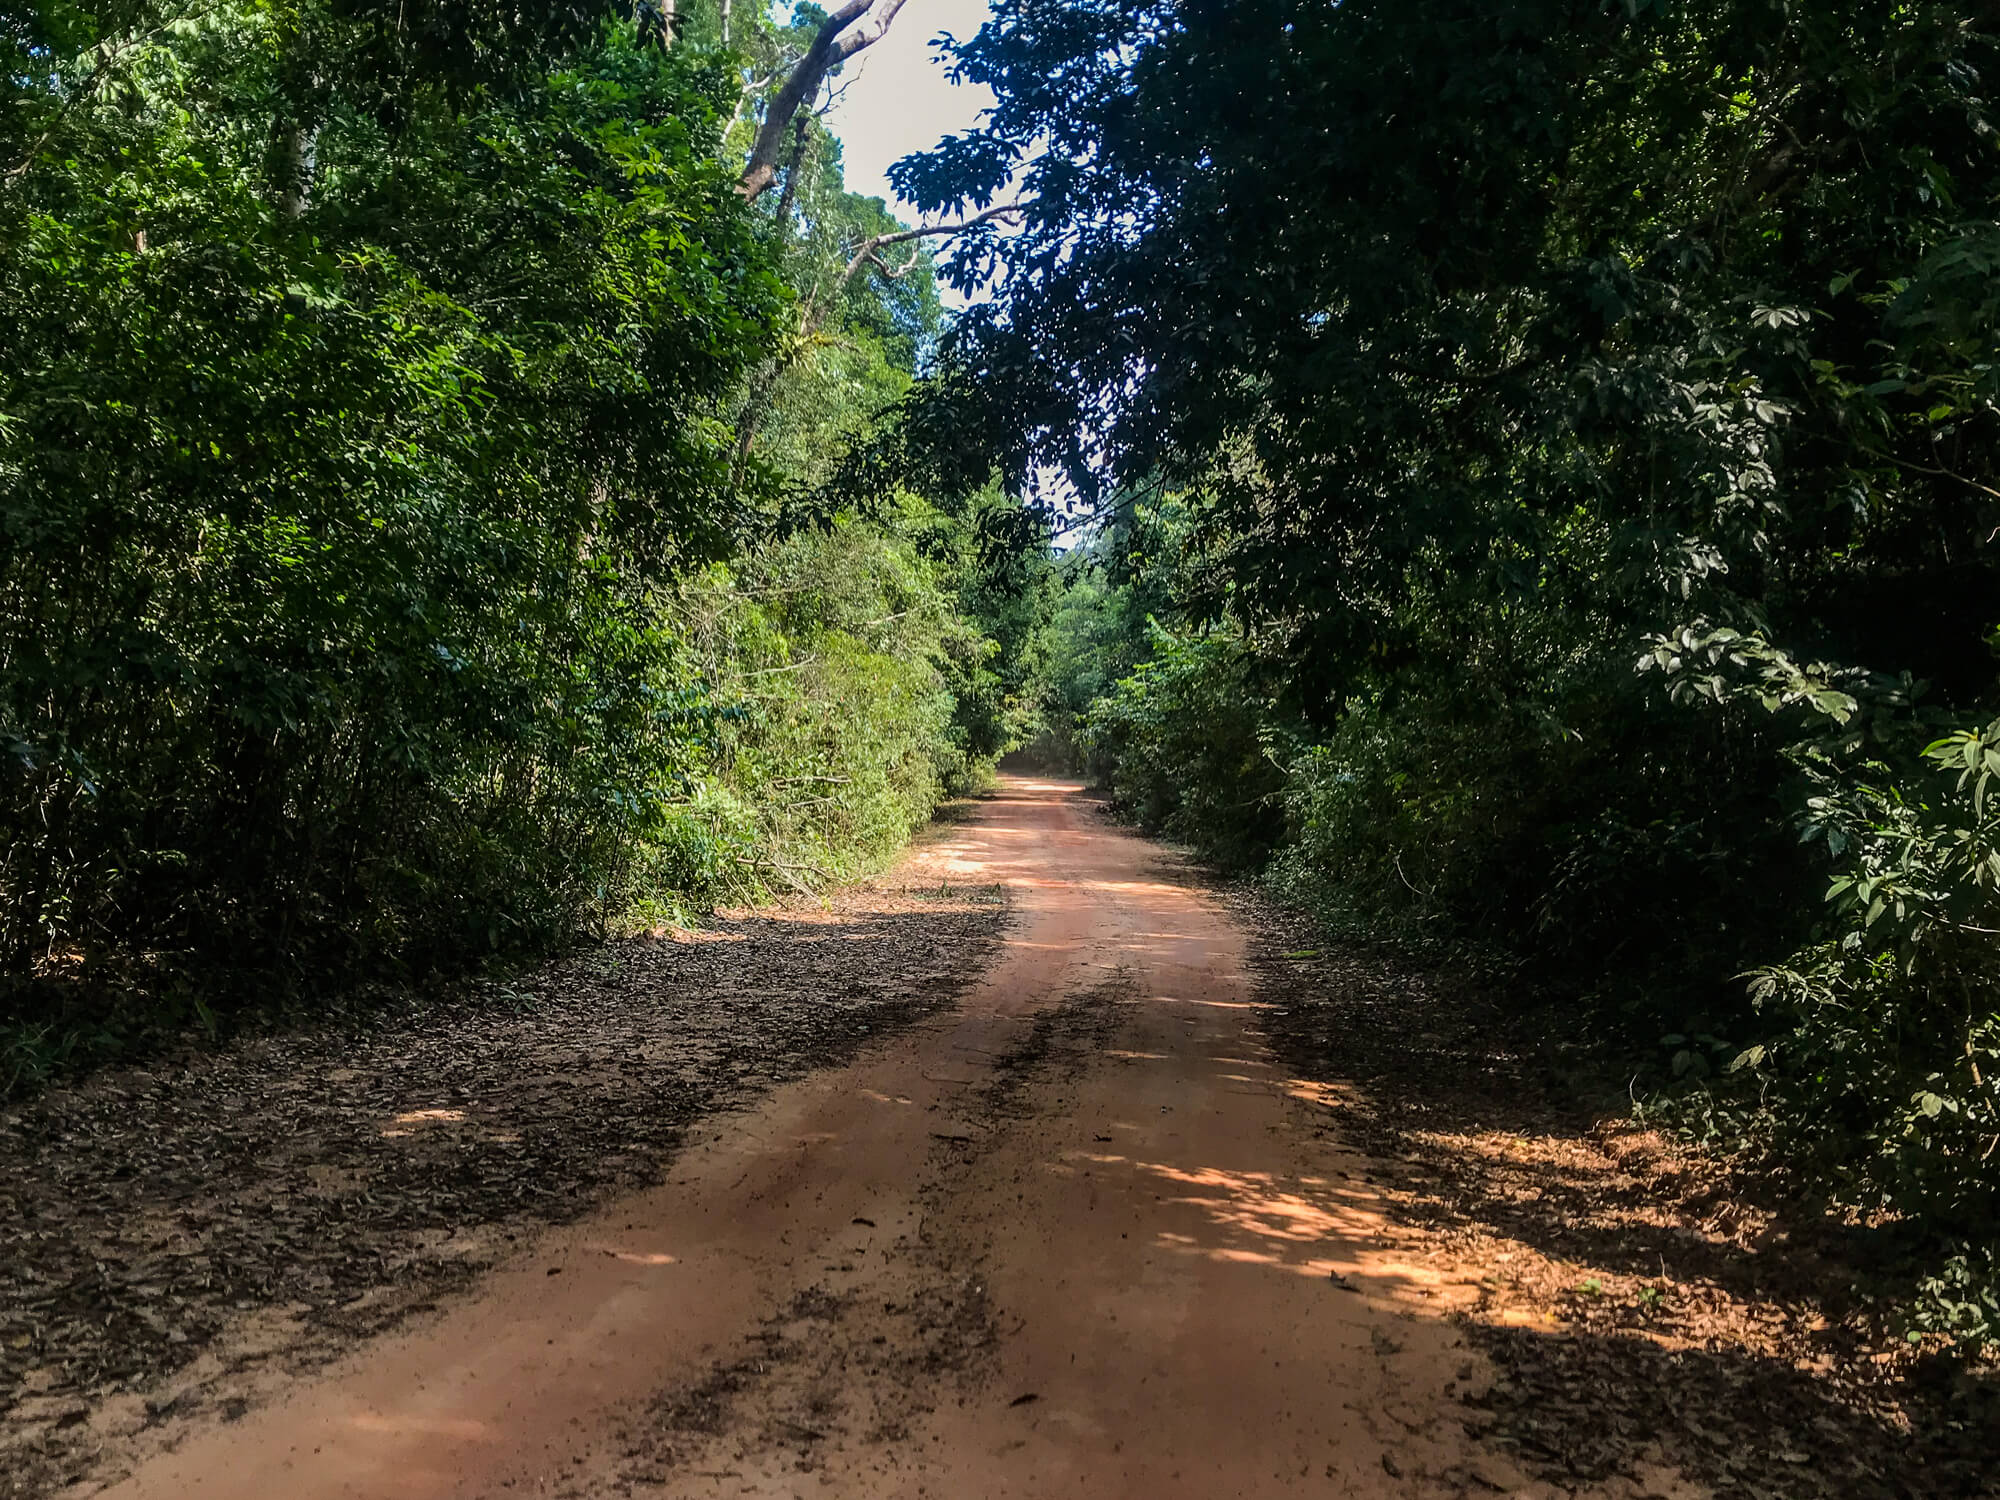 Exploring the red dirt roads on Phu Quoc island is one of the best things to do